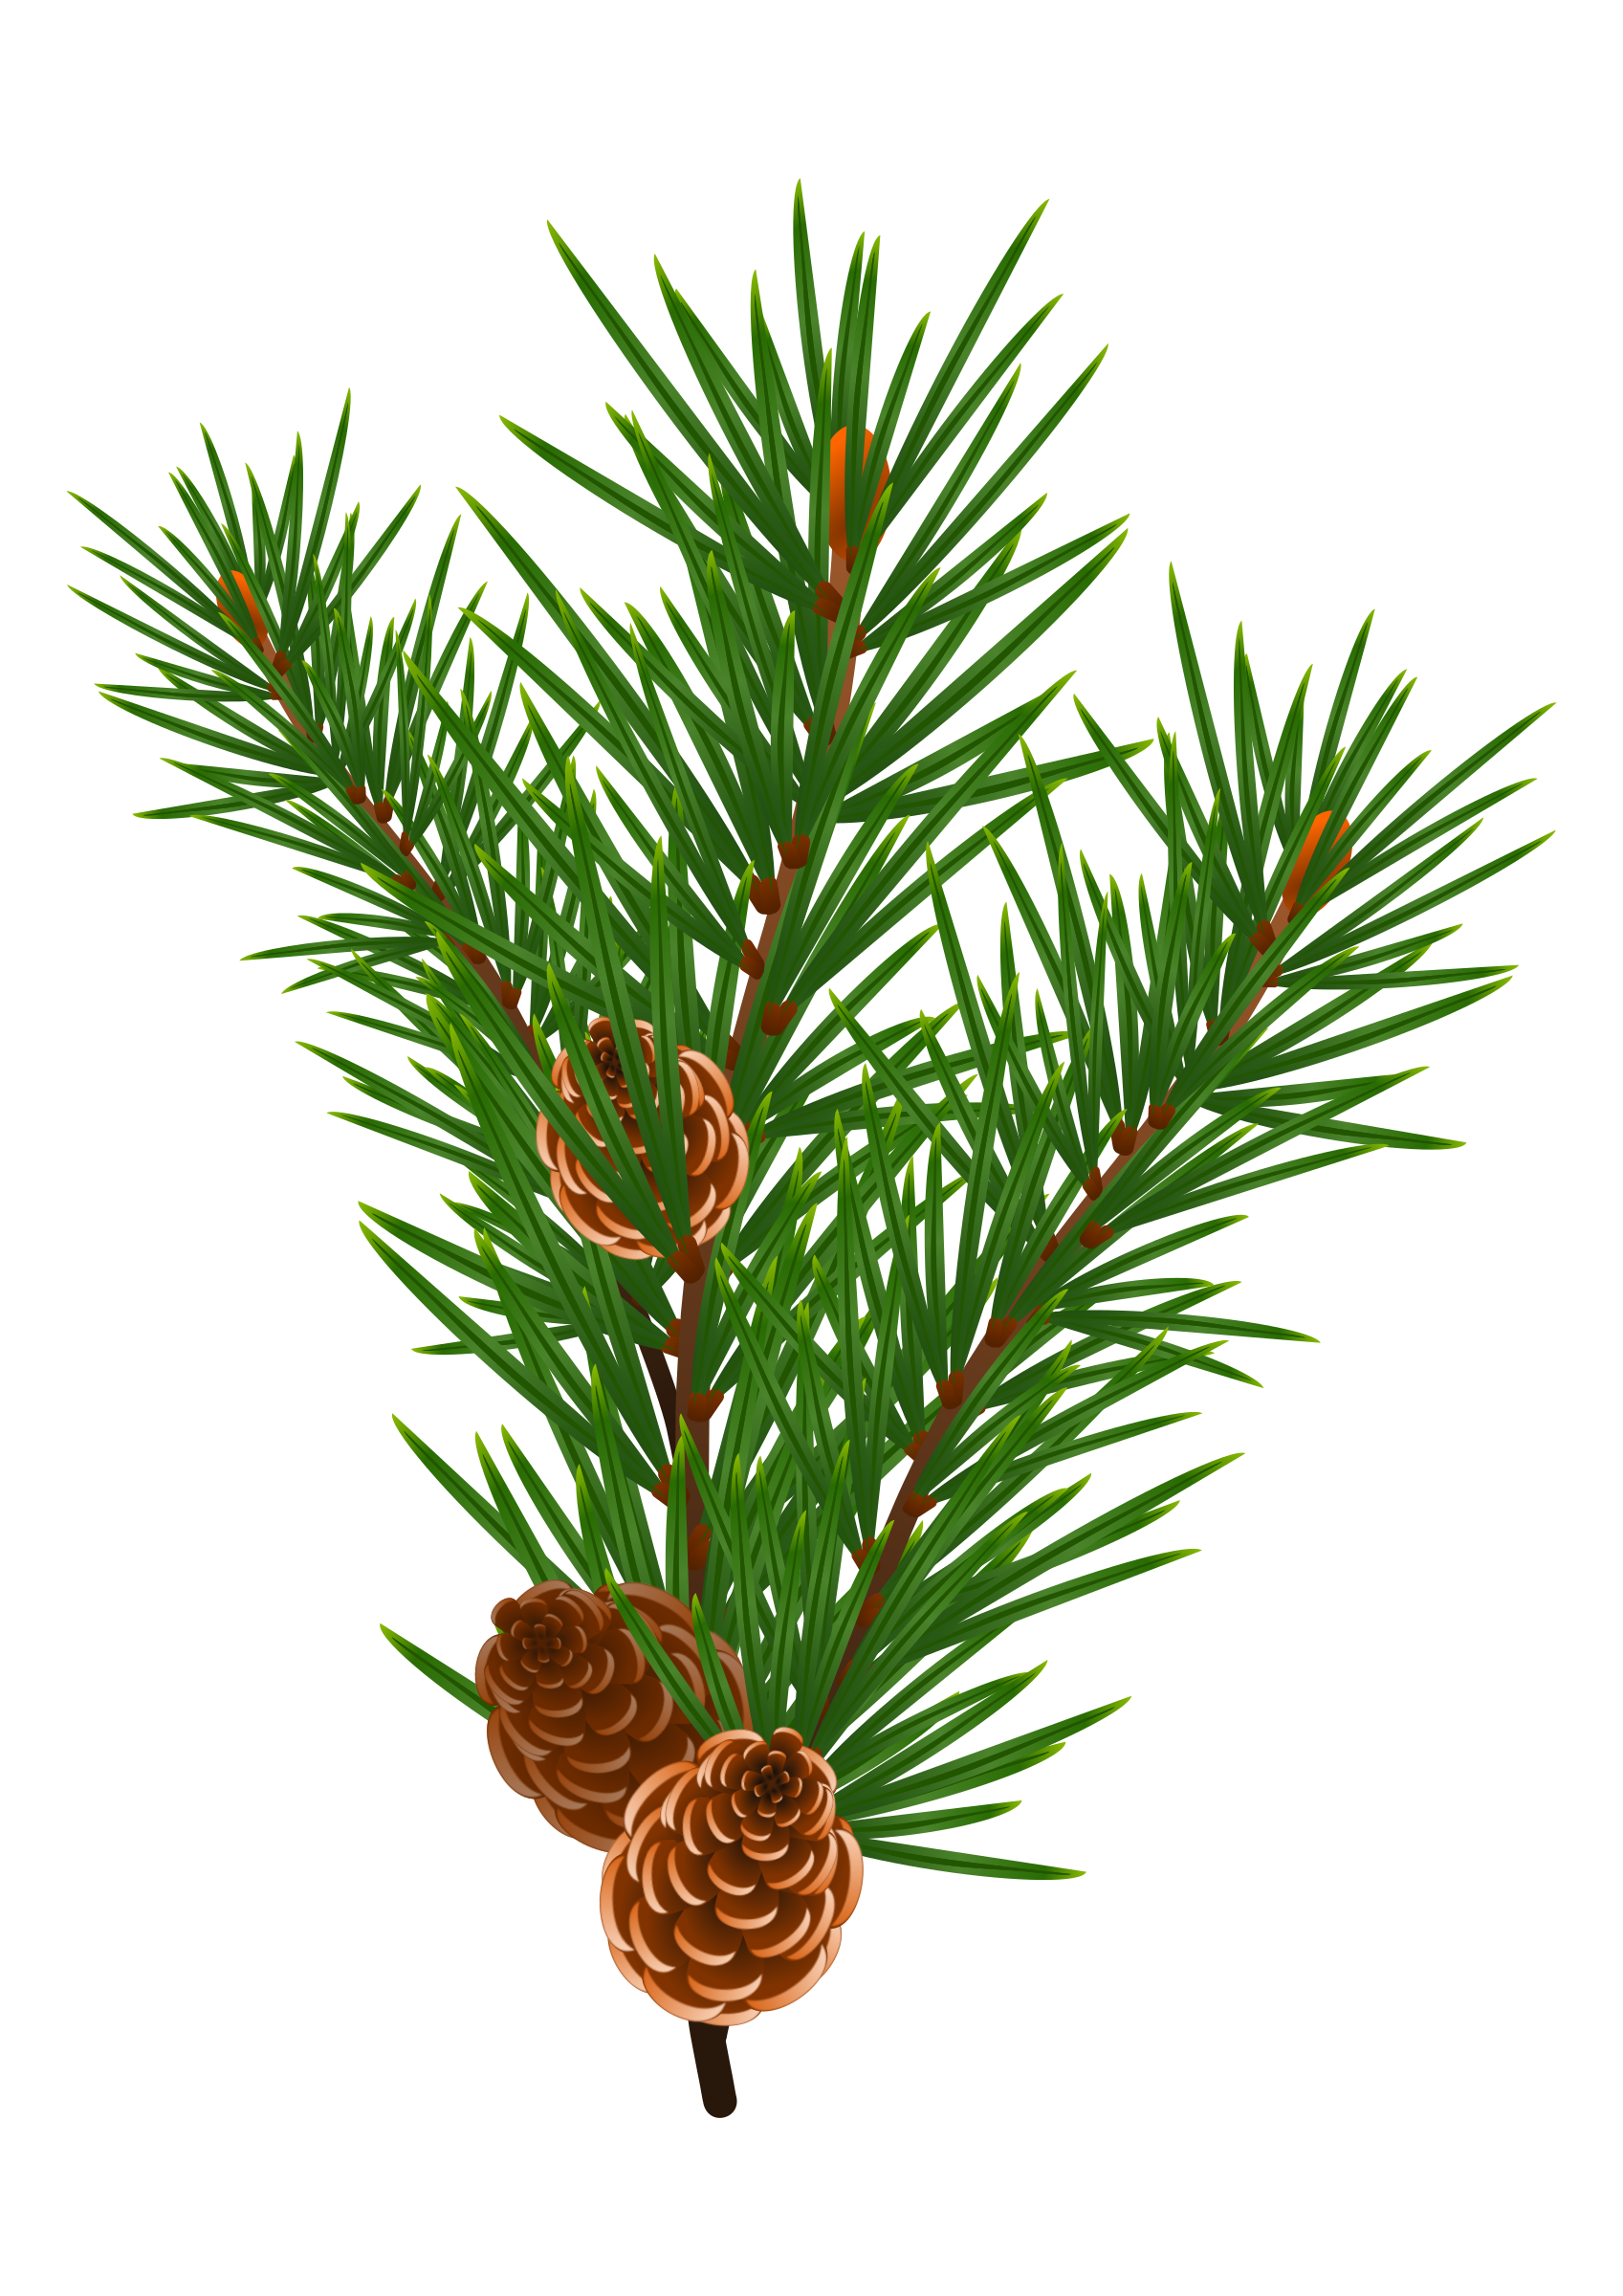 Pine Branch with Pine Cones Vector Clipart image.